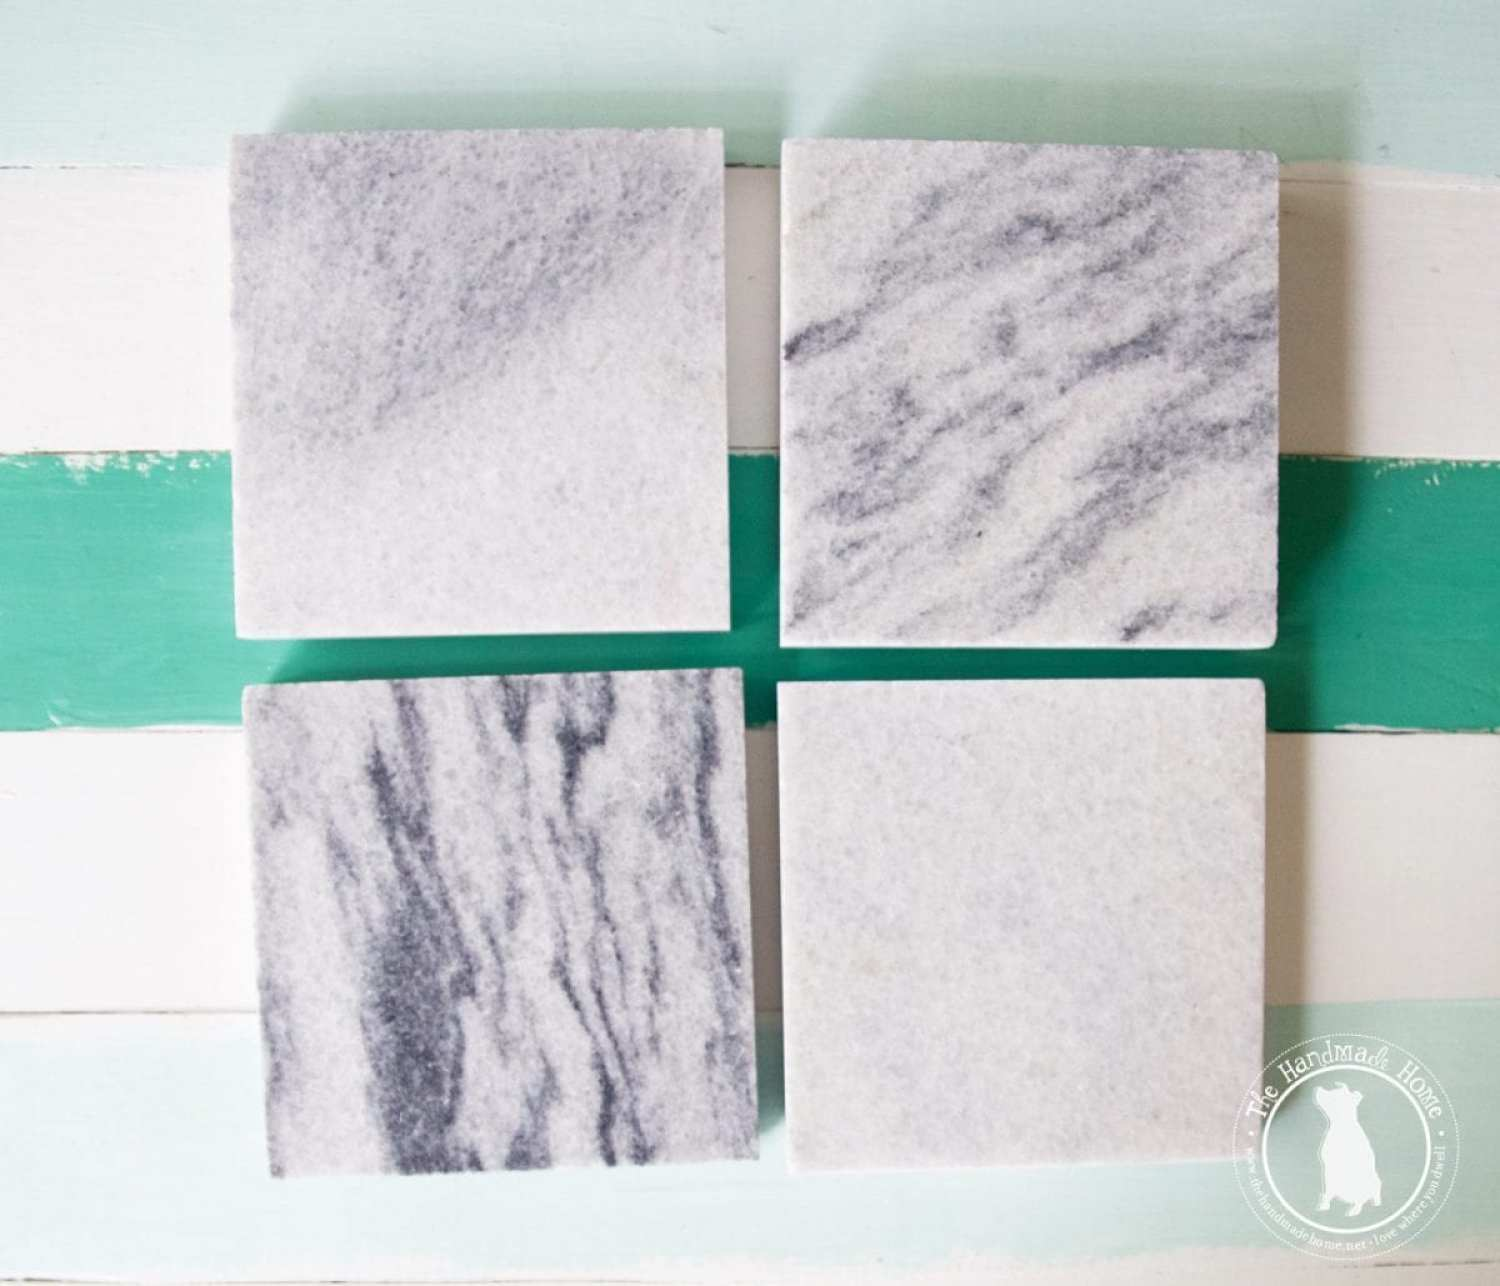 marble_samples